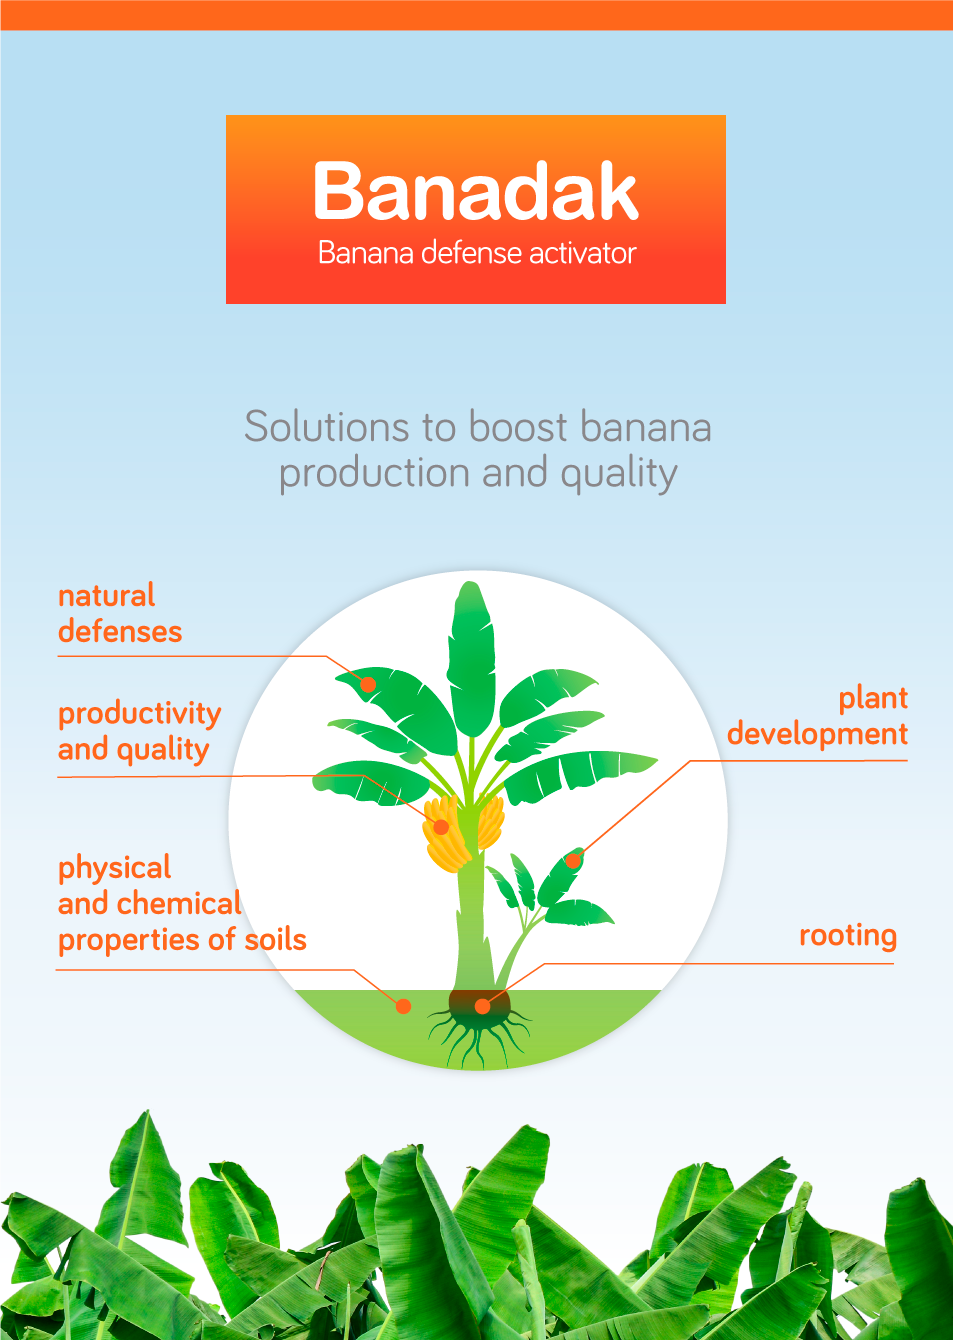 Banadak: Solutions to boost banana production and quality